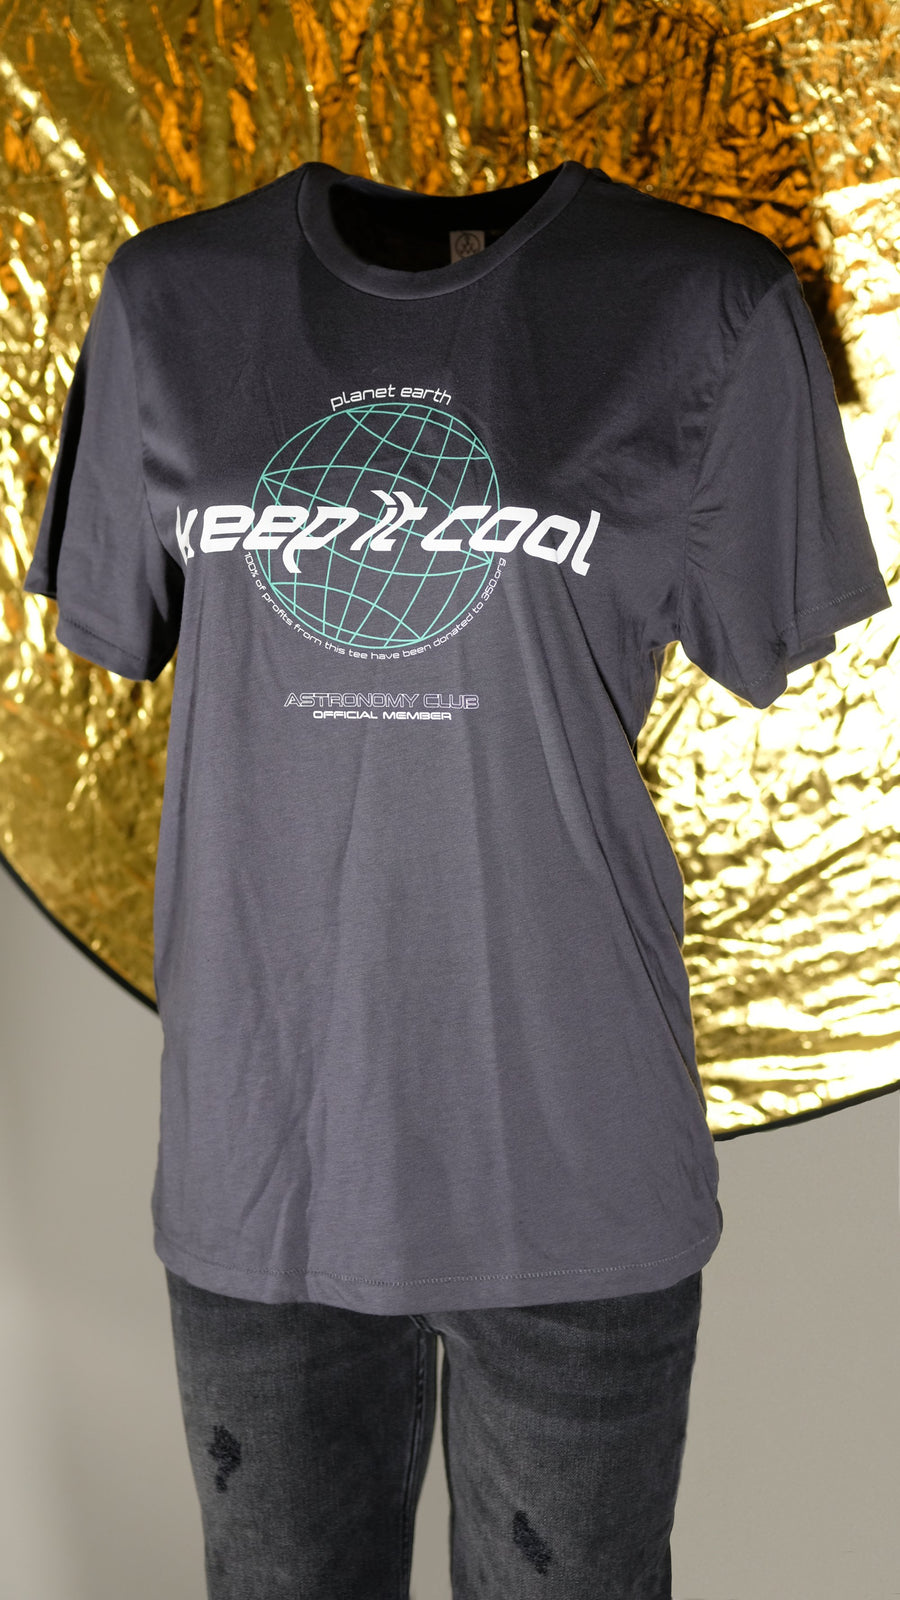 Astronomy Club Keep It Cool Organic Cotton Tee For 350.Org